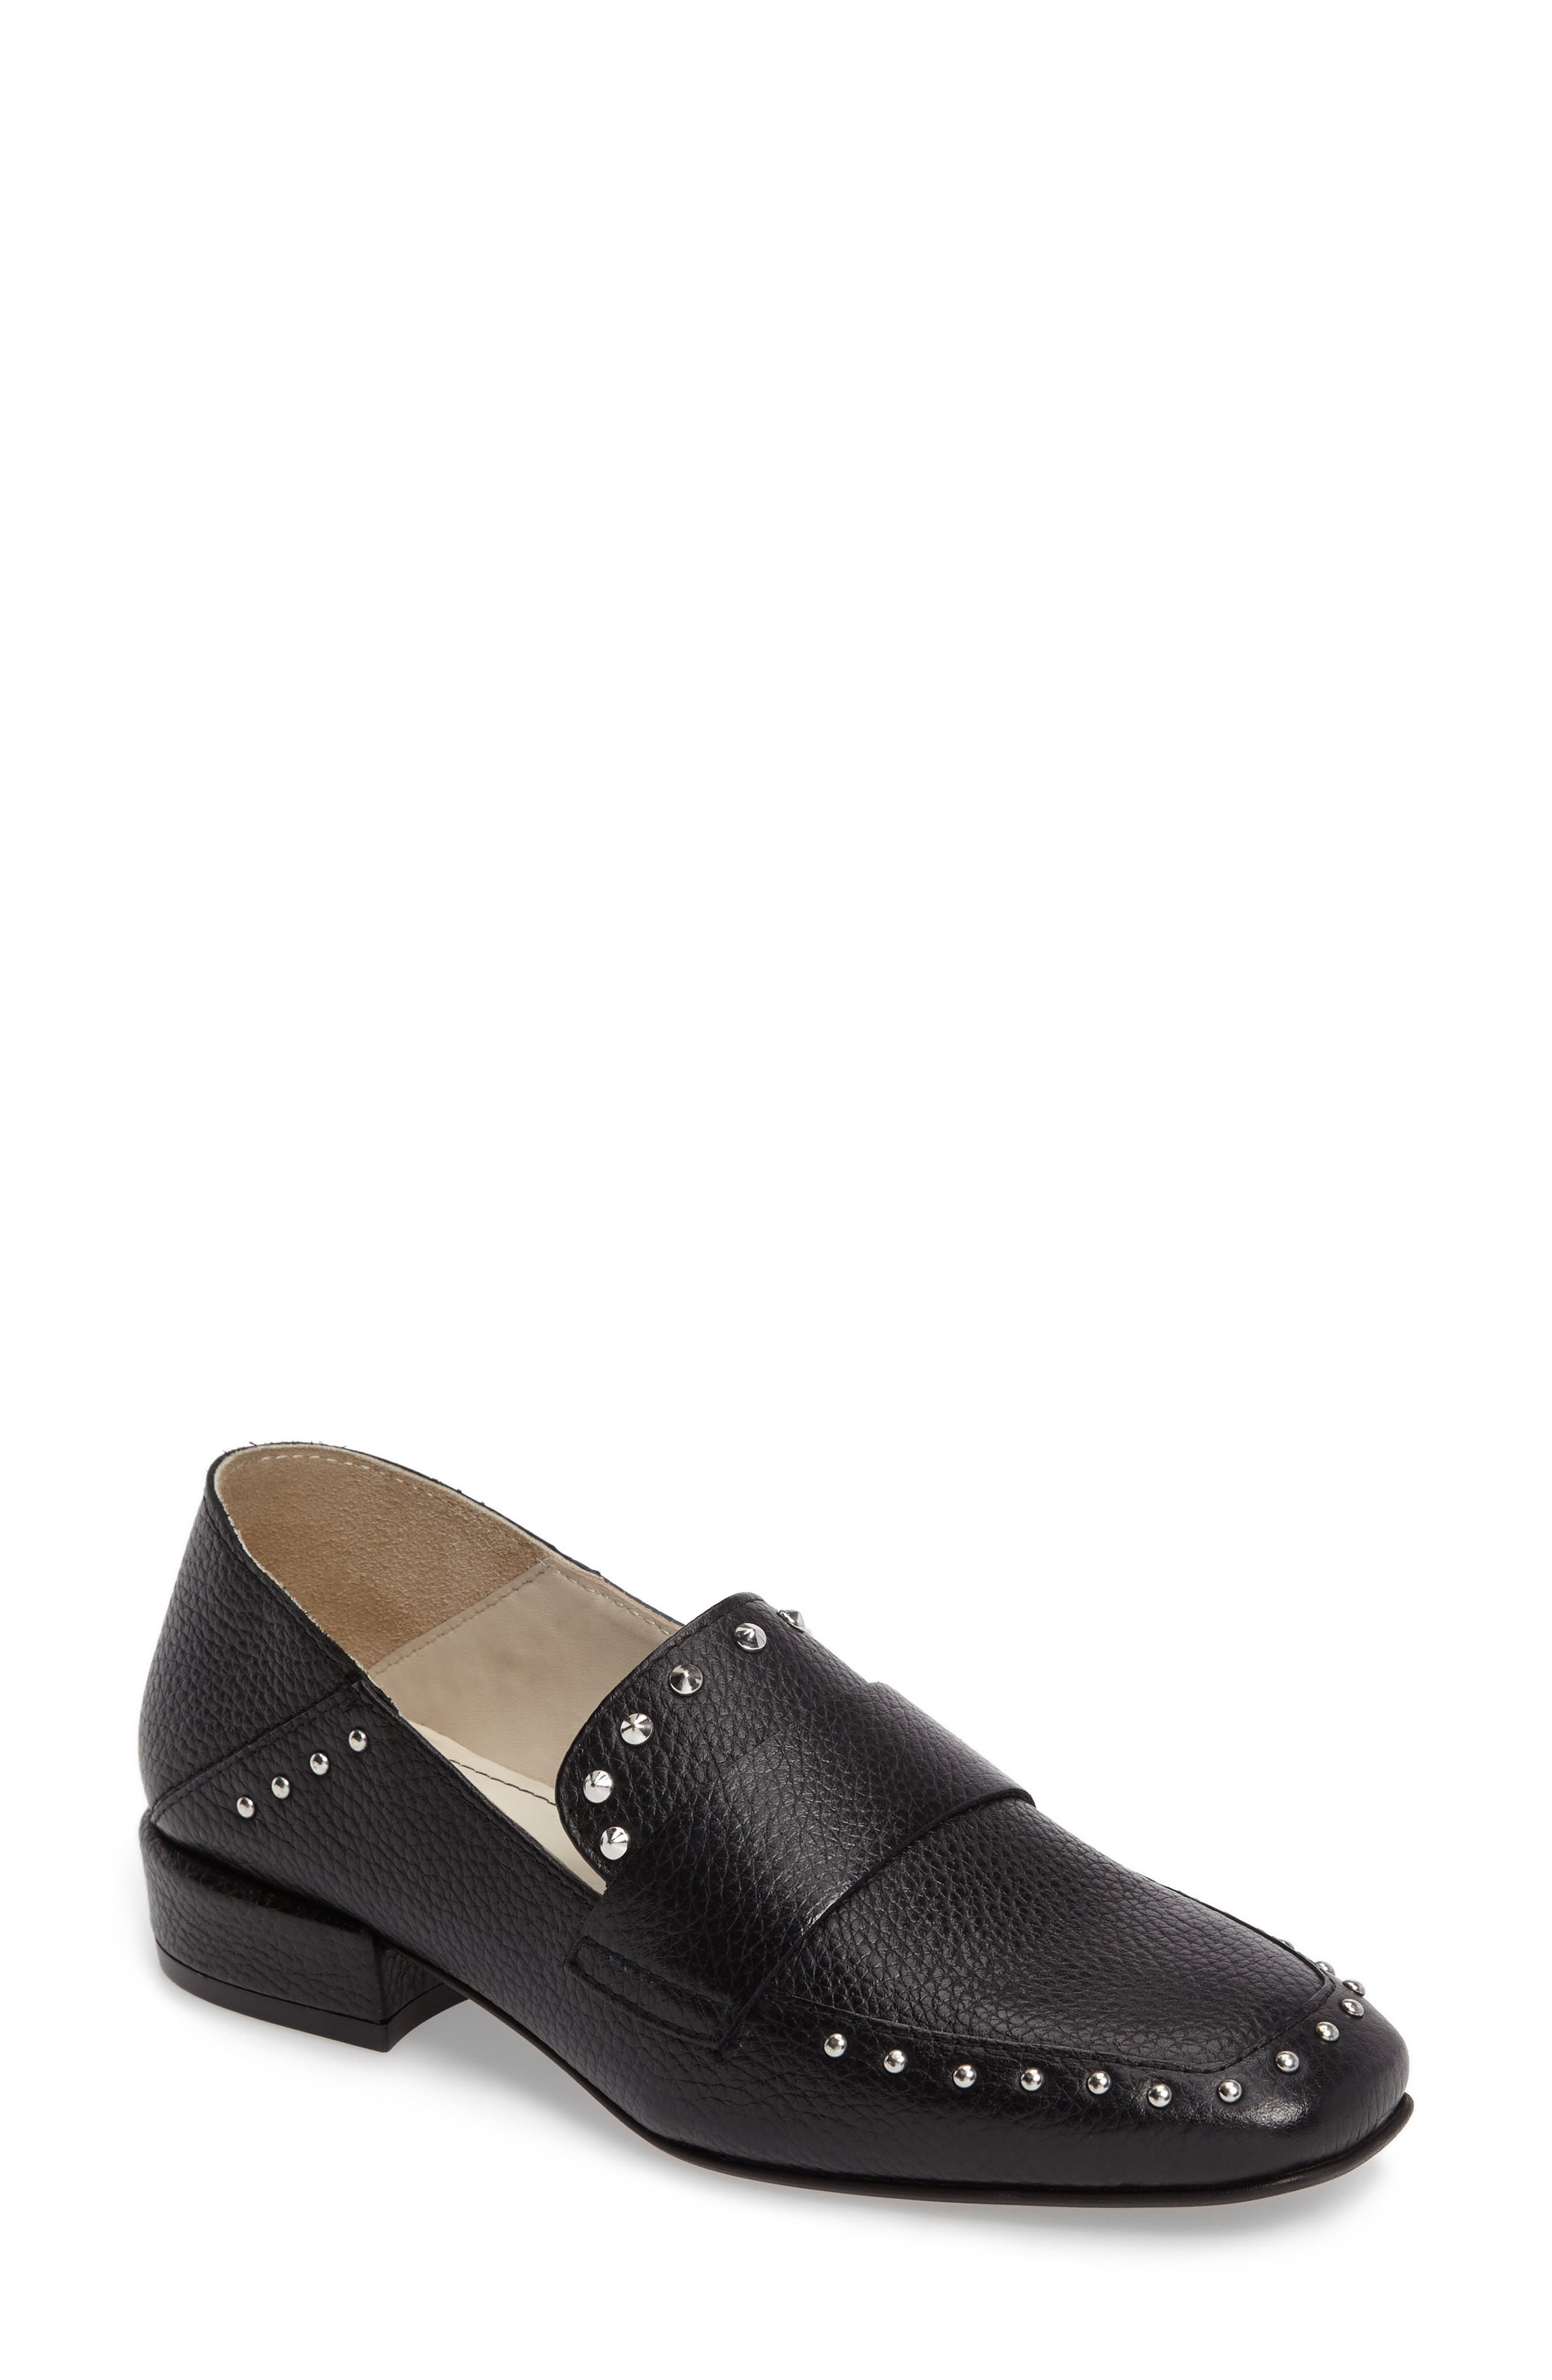 Kenneth Cole New York Bowan 2 Convertible Loafer (Women)